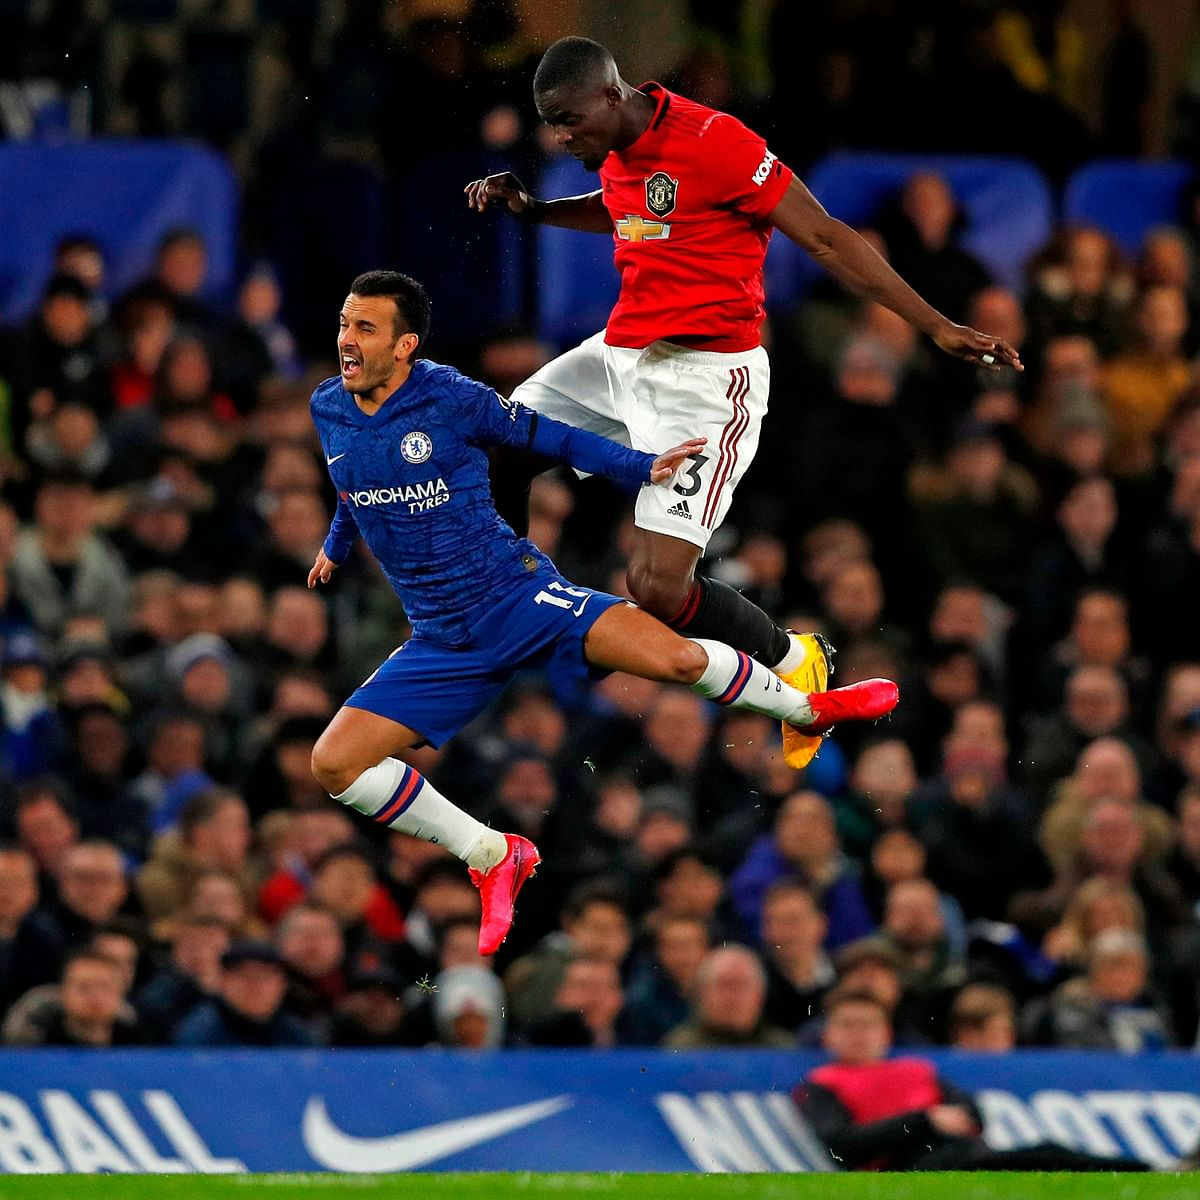 Man United dishes out 2-0 nightmare at Chelsea's home turf